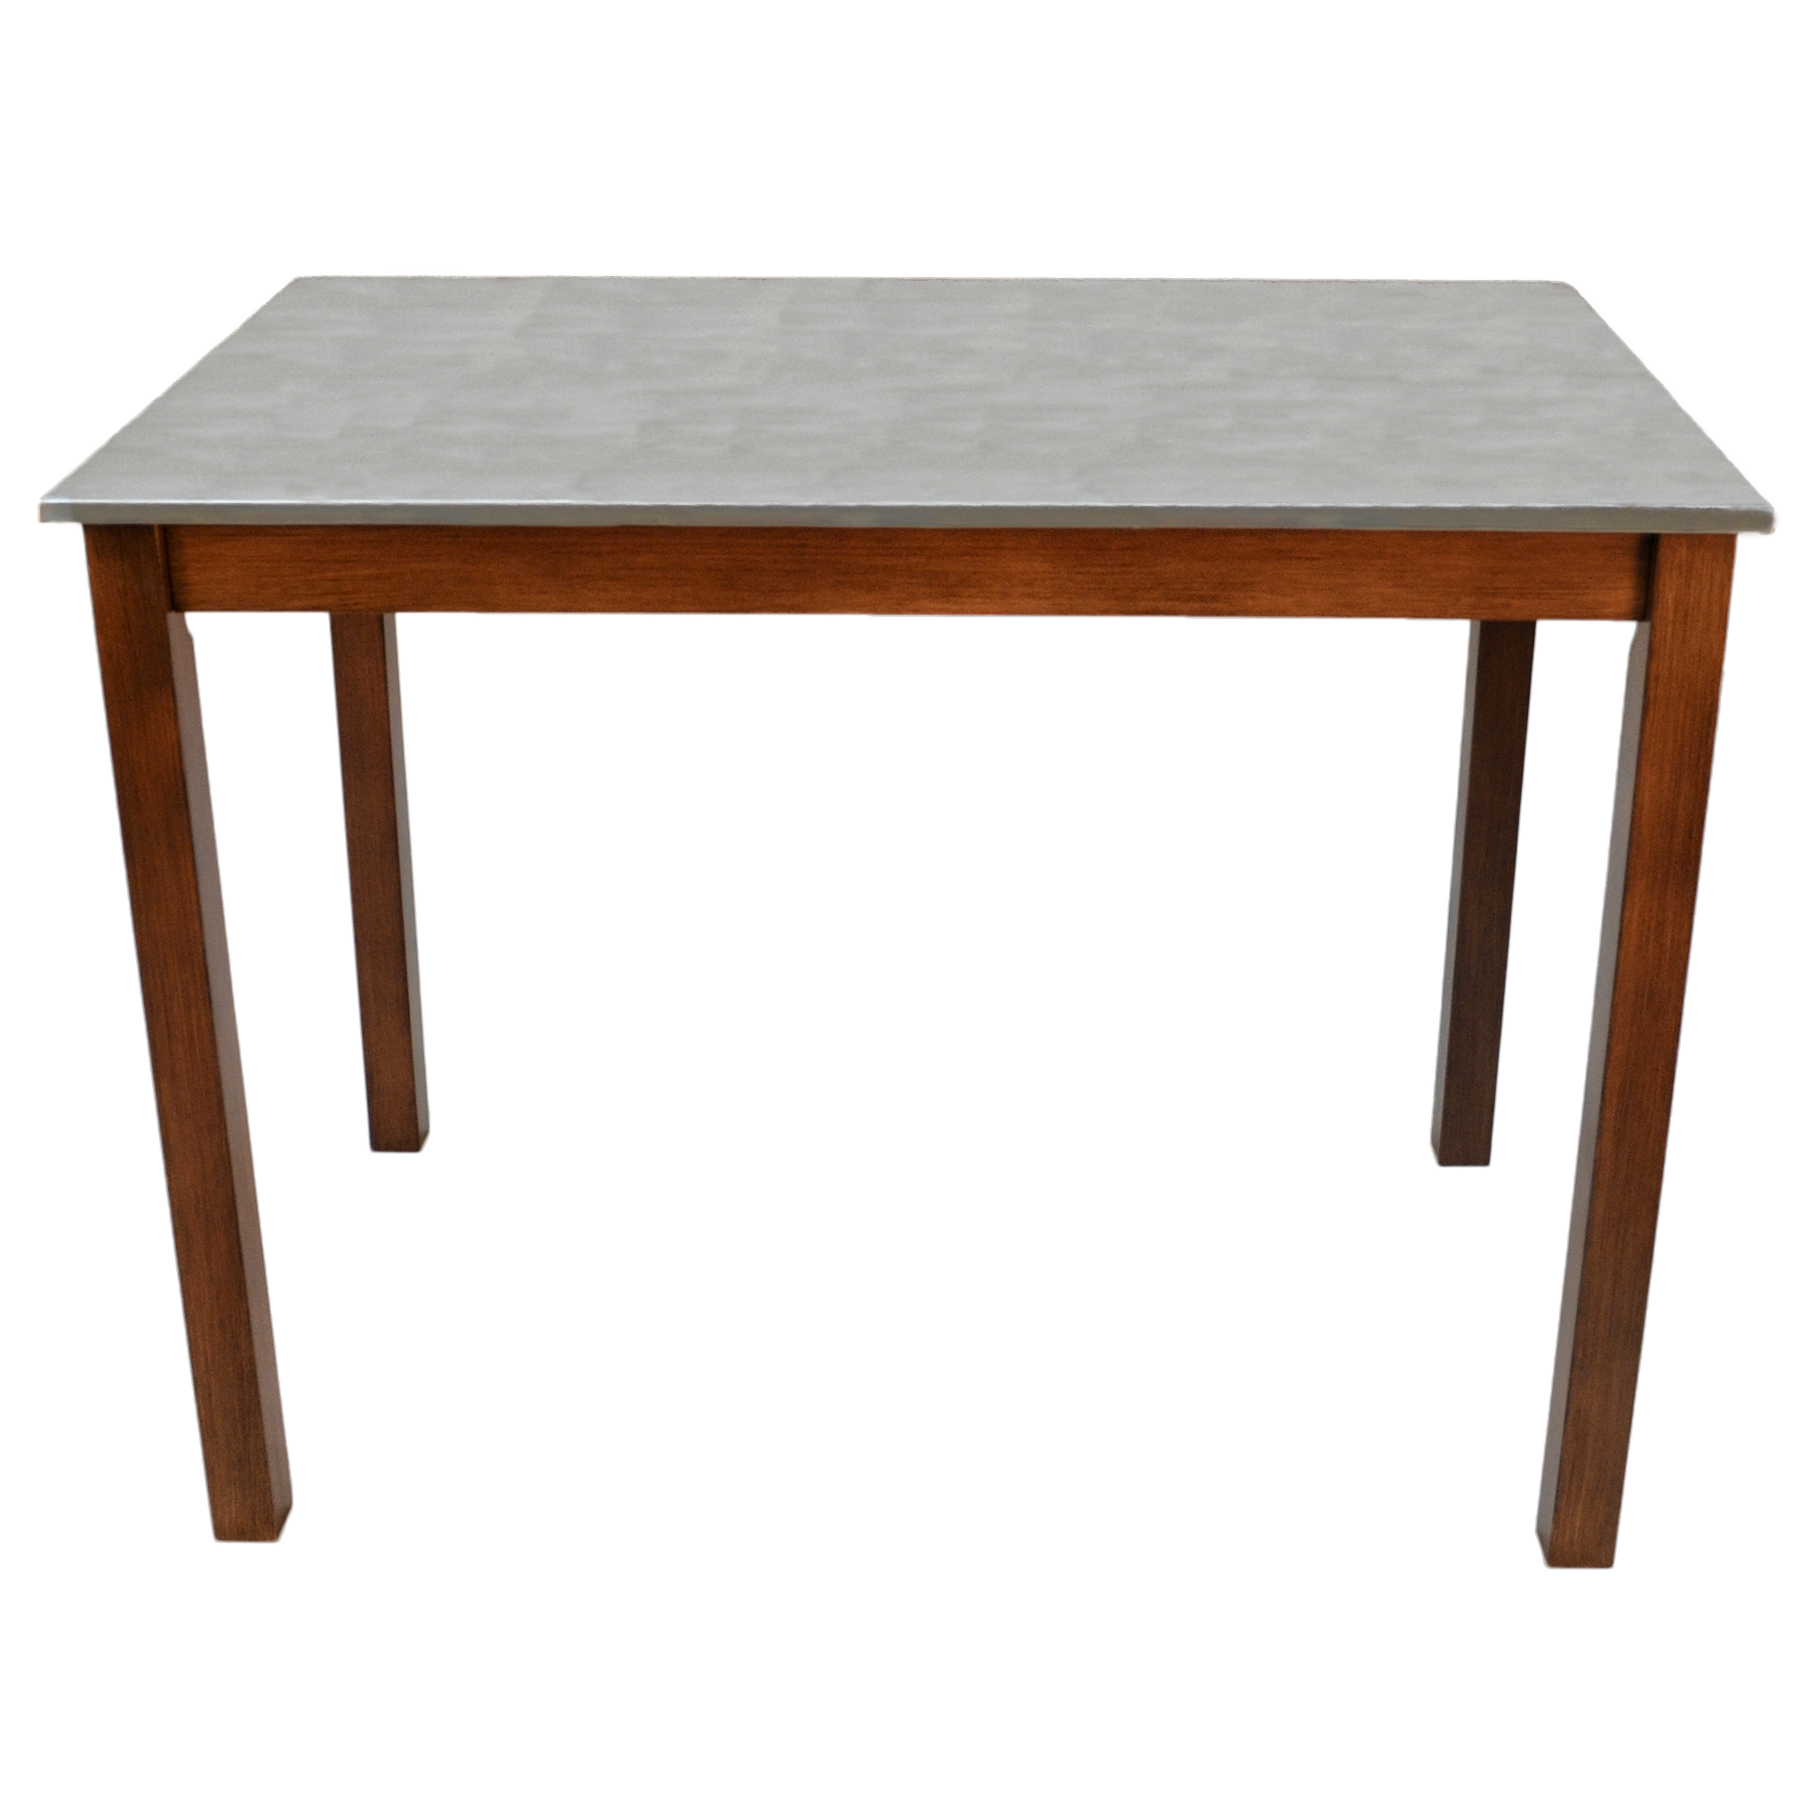 Cooper Stainless Steel Top Bar Table, Chestnut